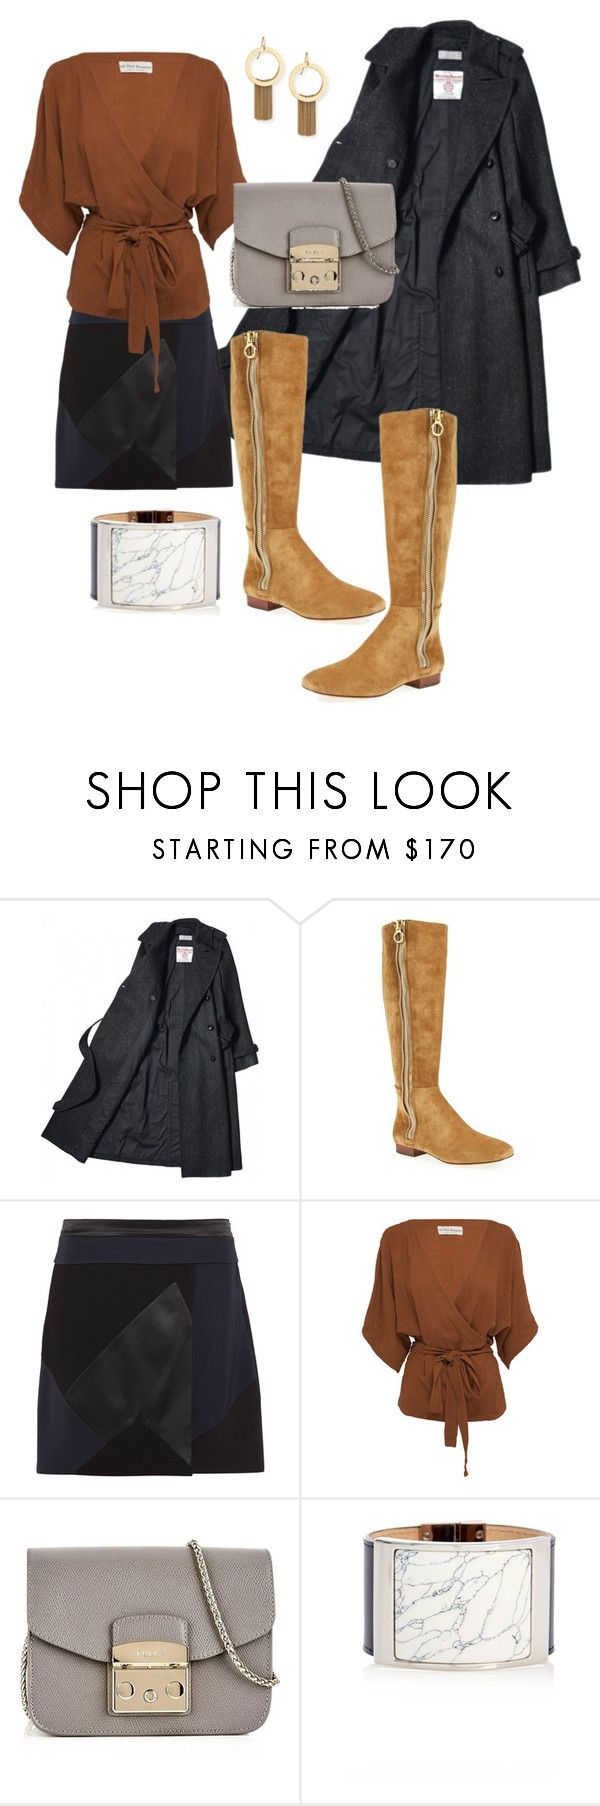 """Flat knee boots"" by jalepe ❤ liked on Polyvore featuring VC Signature, Victoria, Victoria Beckham, All That Remains, Furla, Balenciaga and Stephanie Kantis"